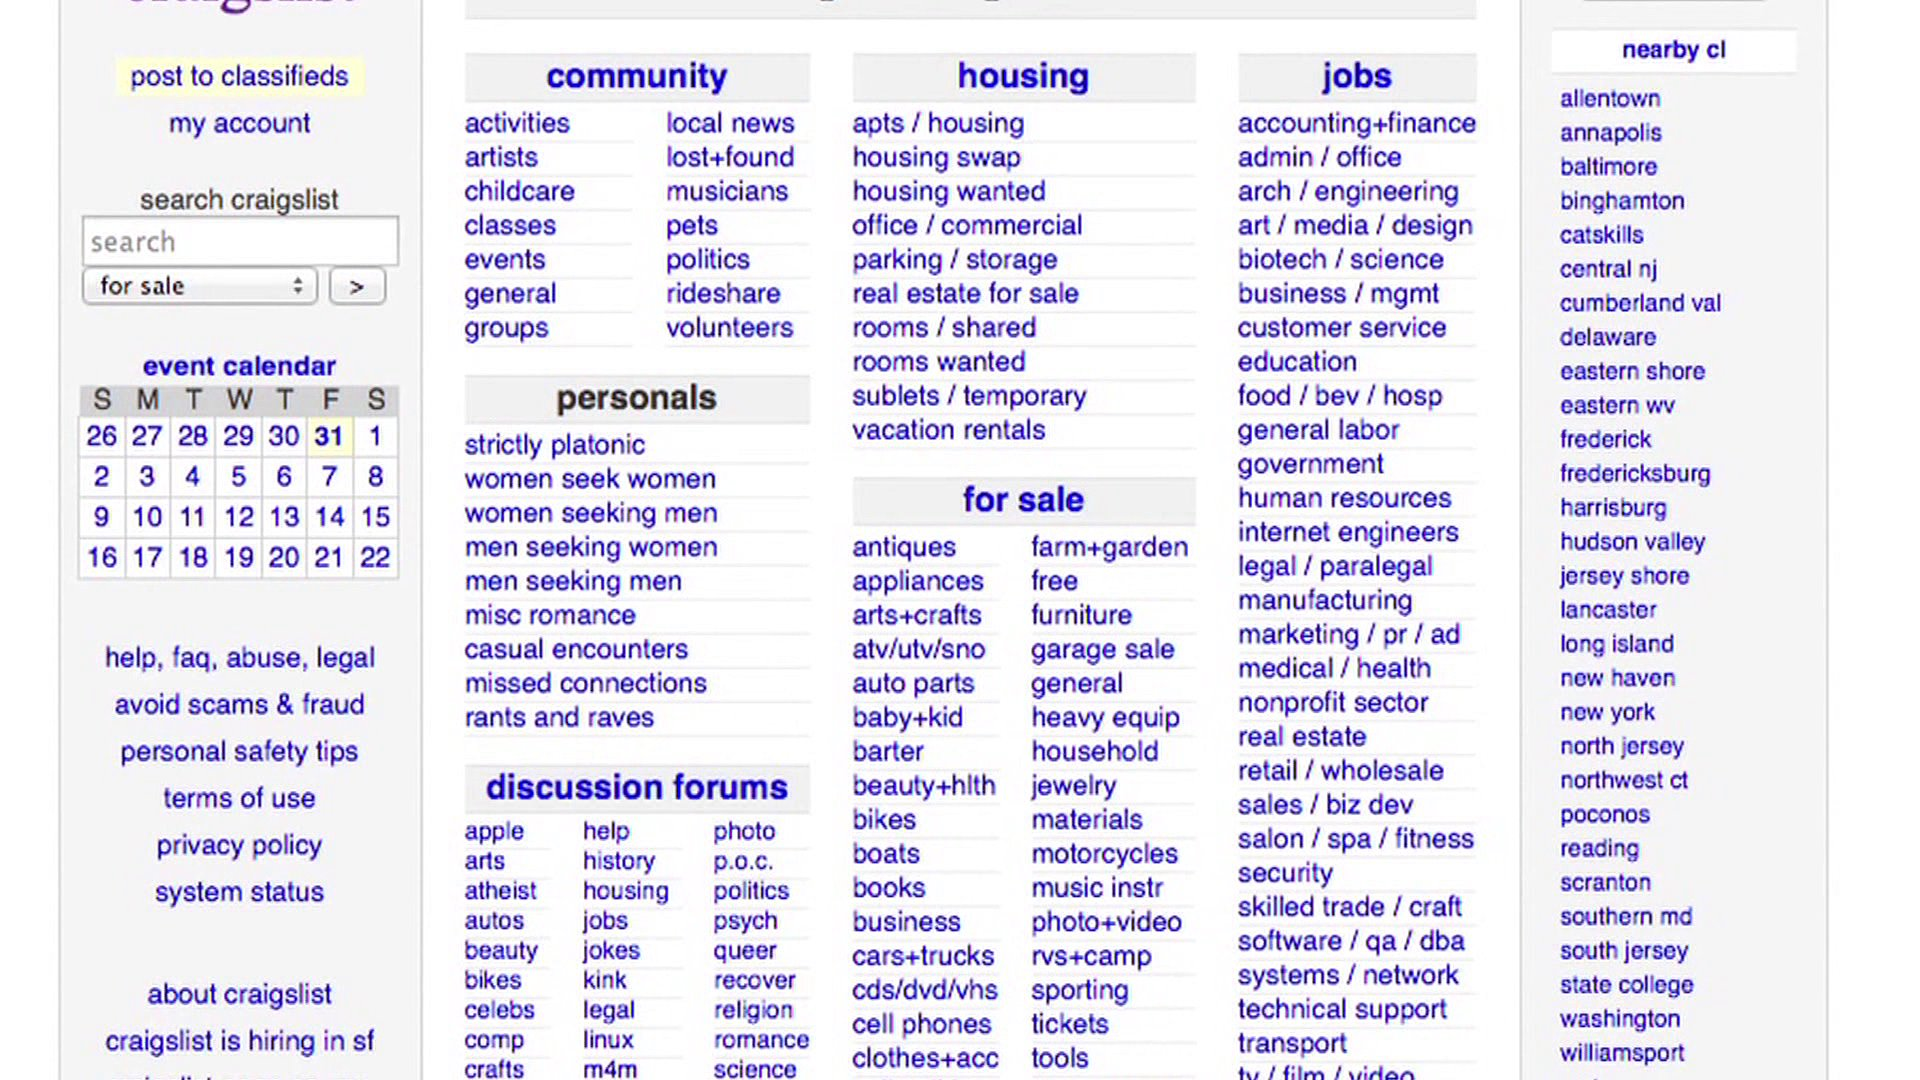 Craigslist Scam Advertising 199 Fake Homes Has Over 100 Victims In Southern Illinois Fox 2